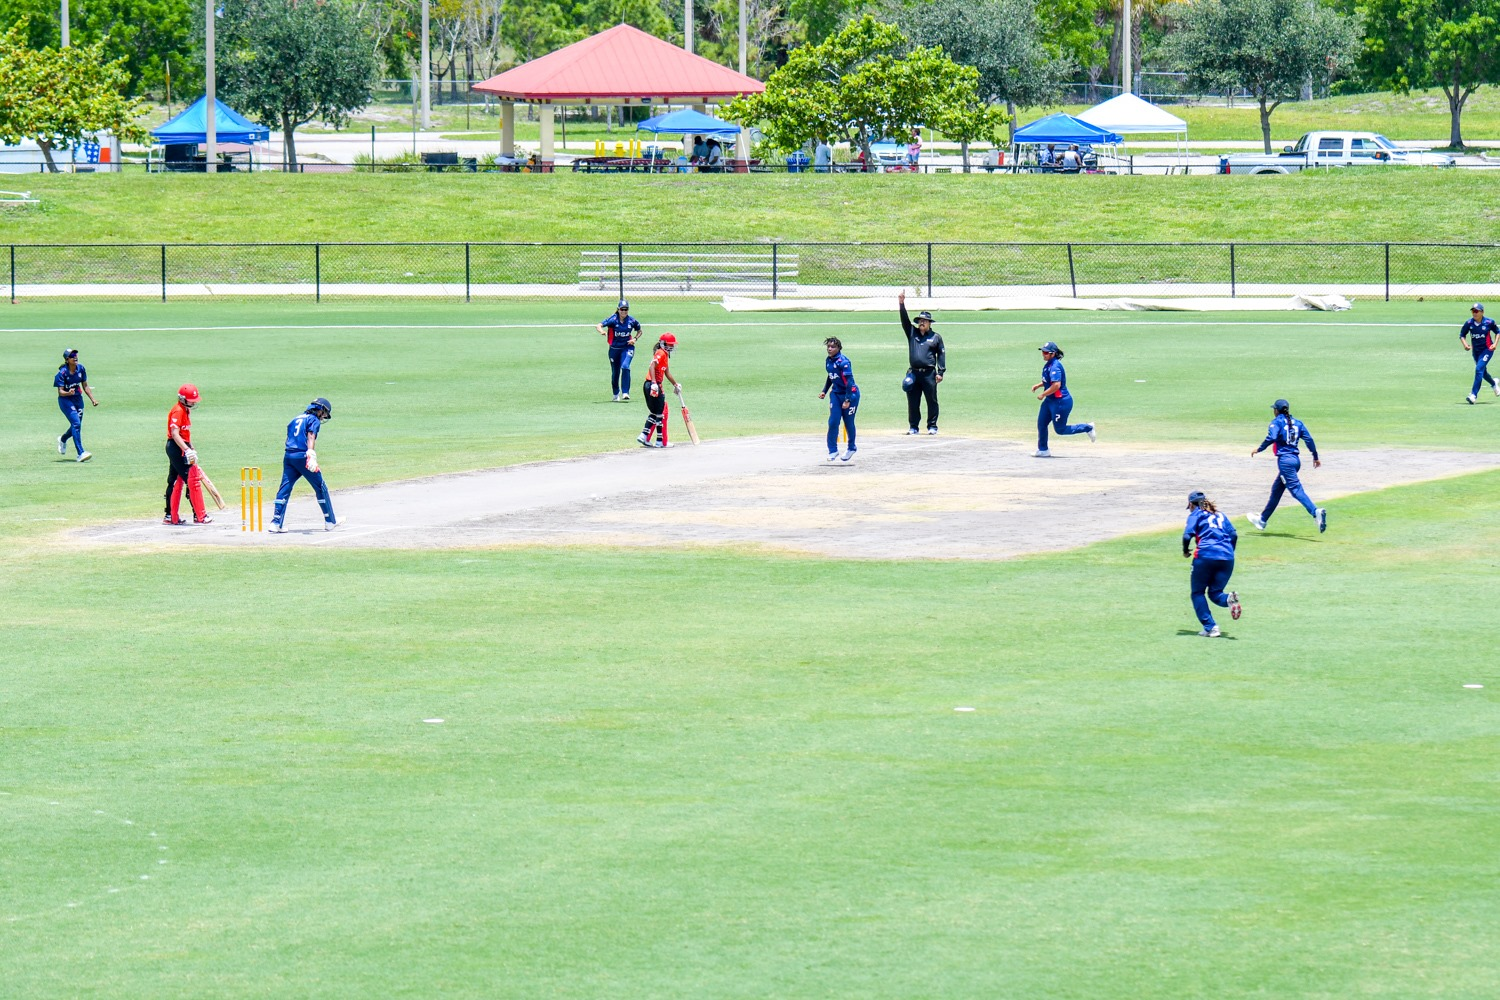 Action during a T20 game between the U.S. and Canada in May at the Central Broward Regional Park, Lauderhill, Florida. (USA Cricket)